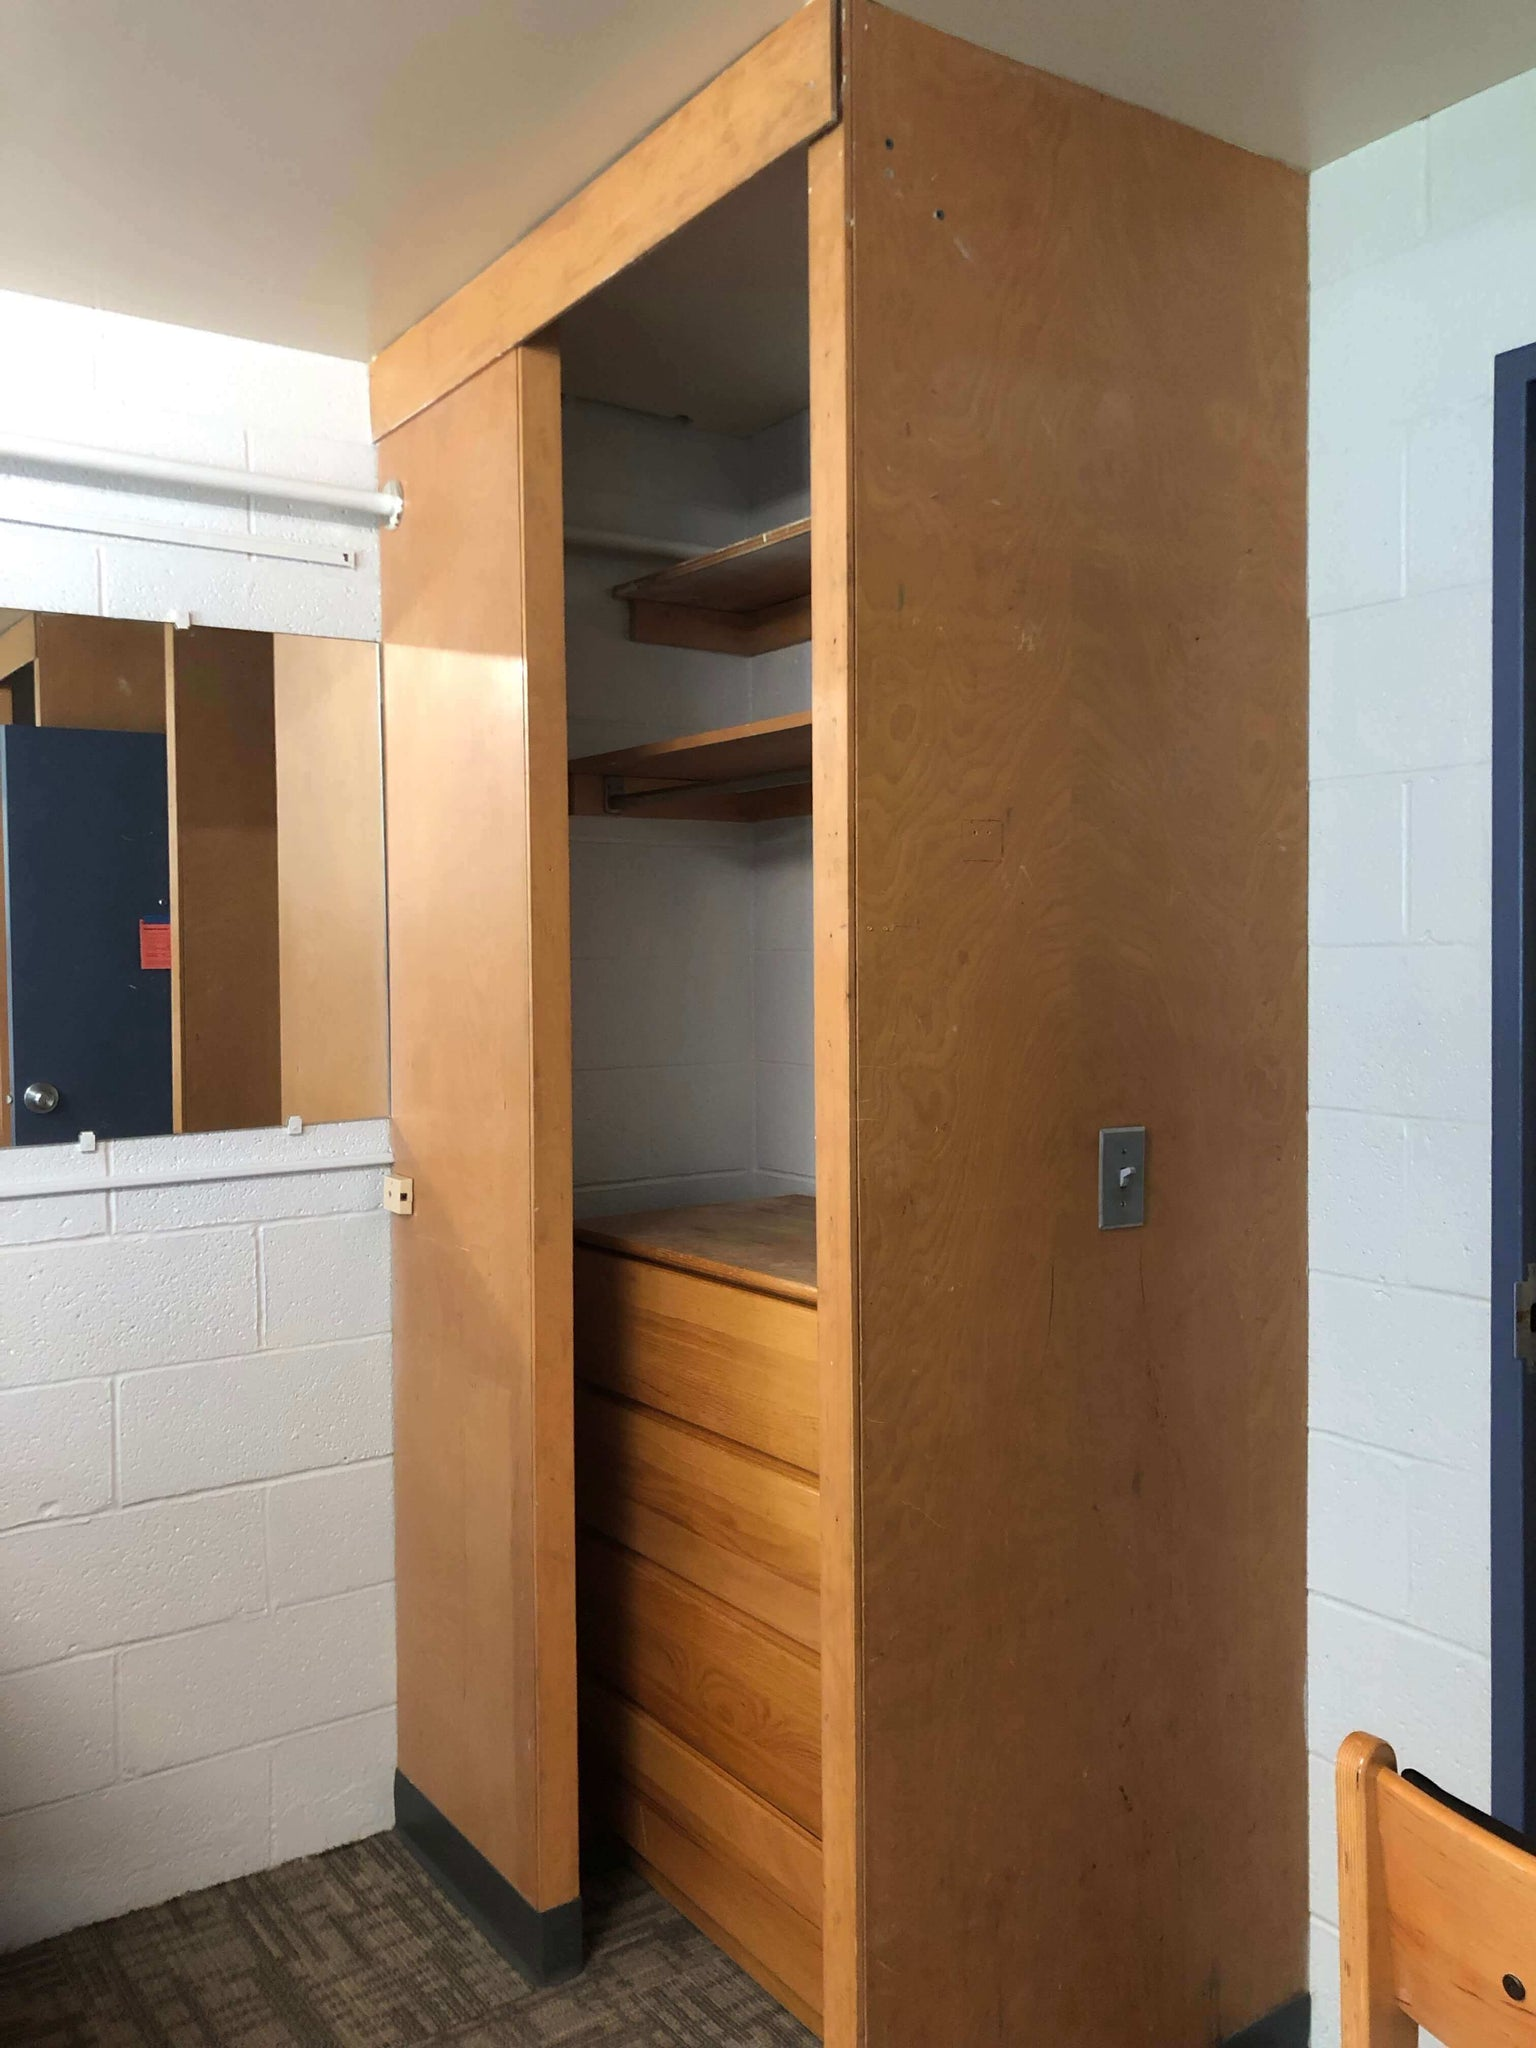 Dorm room before picture with a maple wood closet